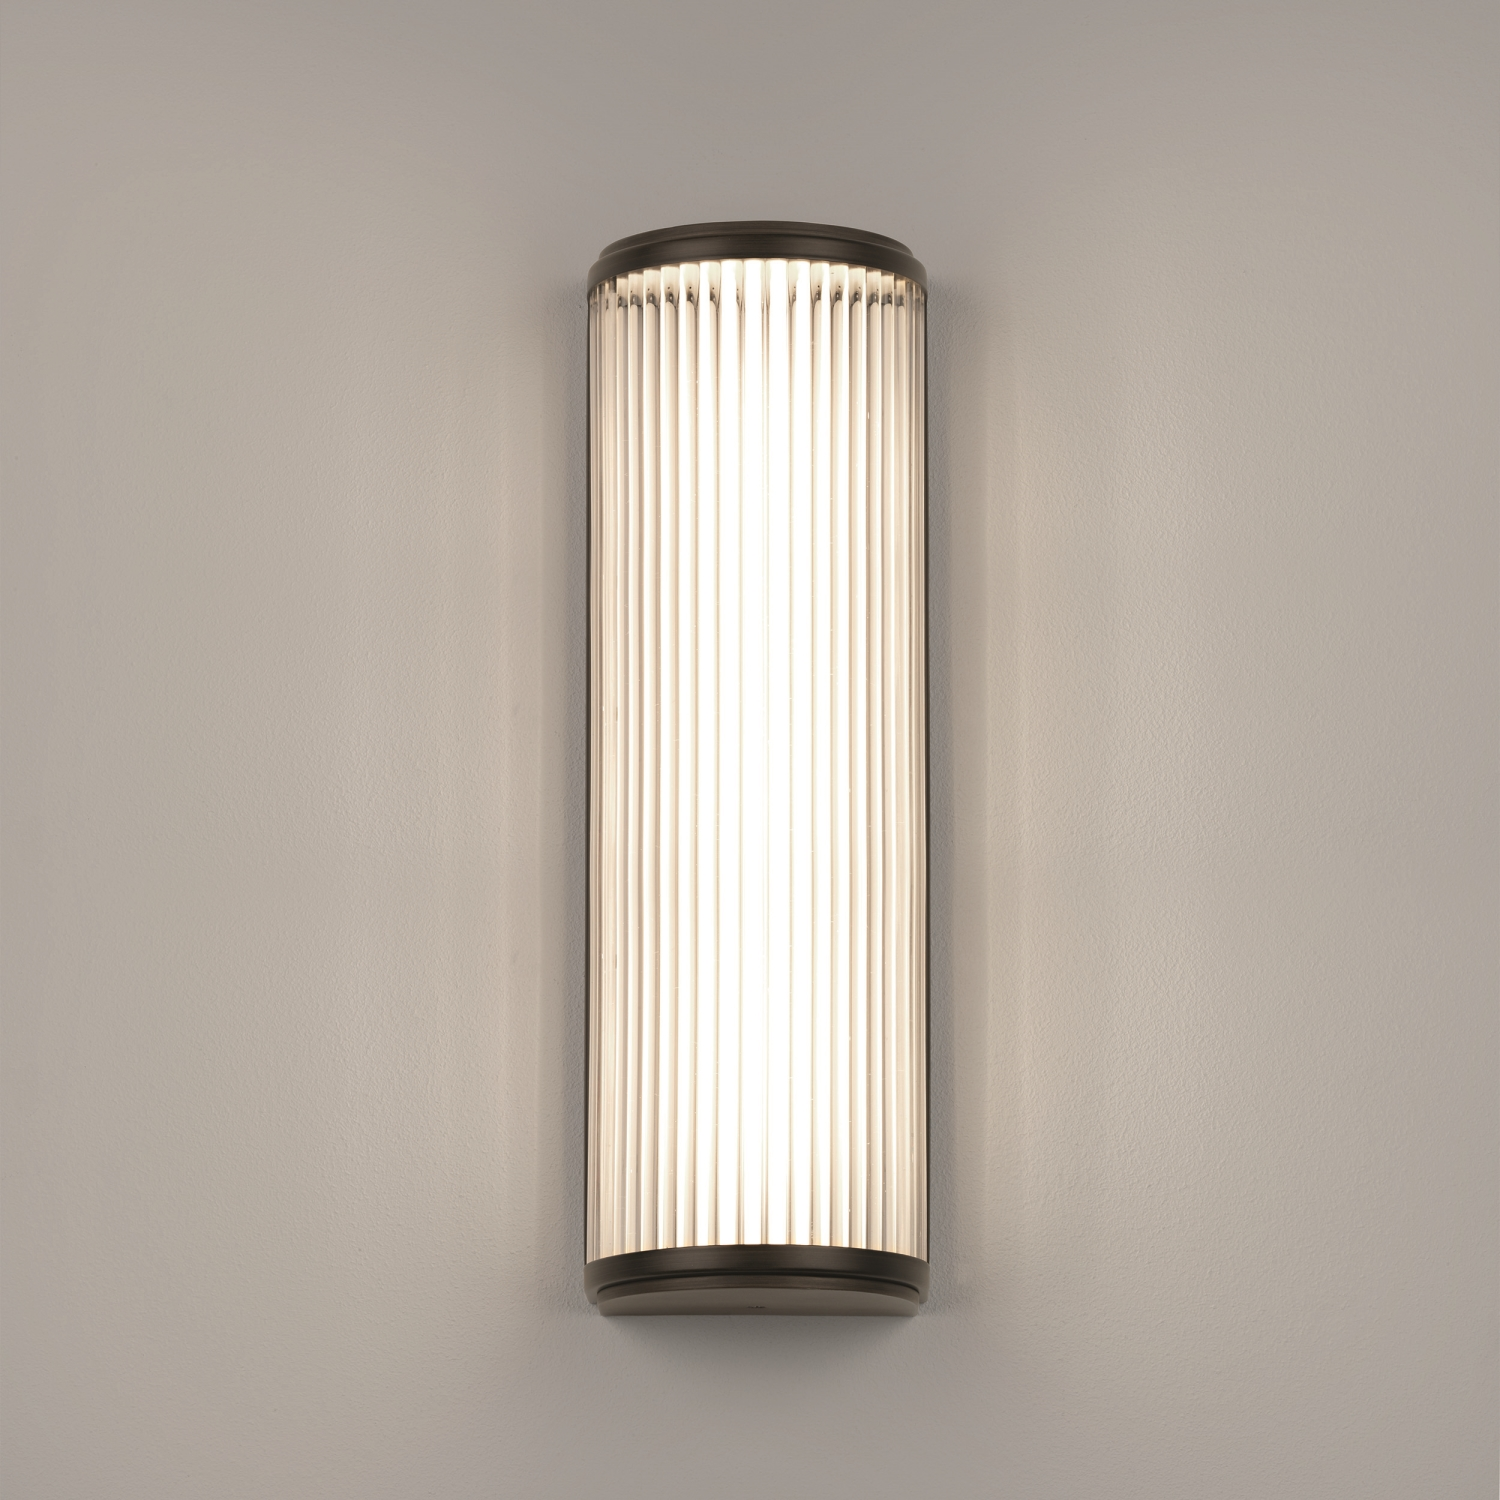 ASTRO VERSAILLES 400 6.4W LED bathroom wall mirror light bronze effect glass Thumbnail 1